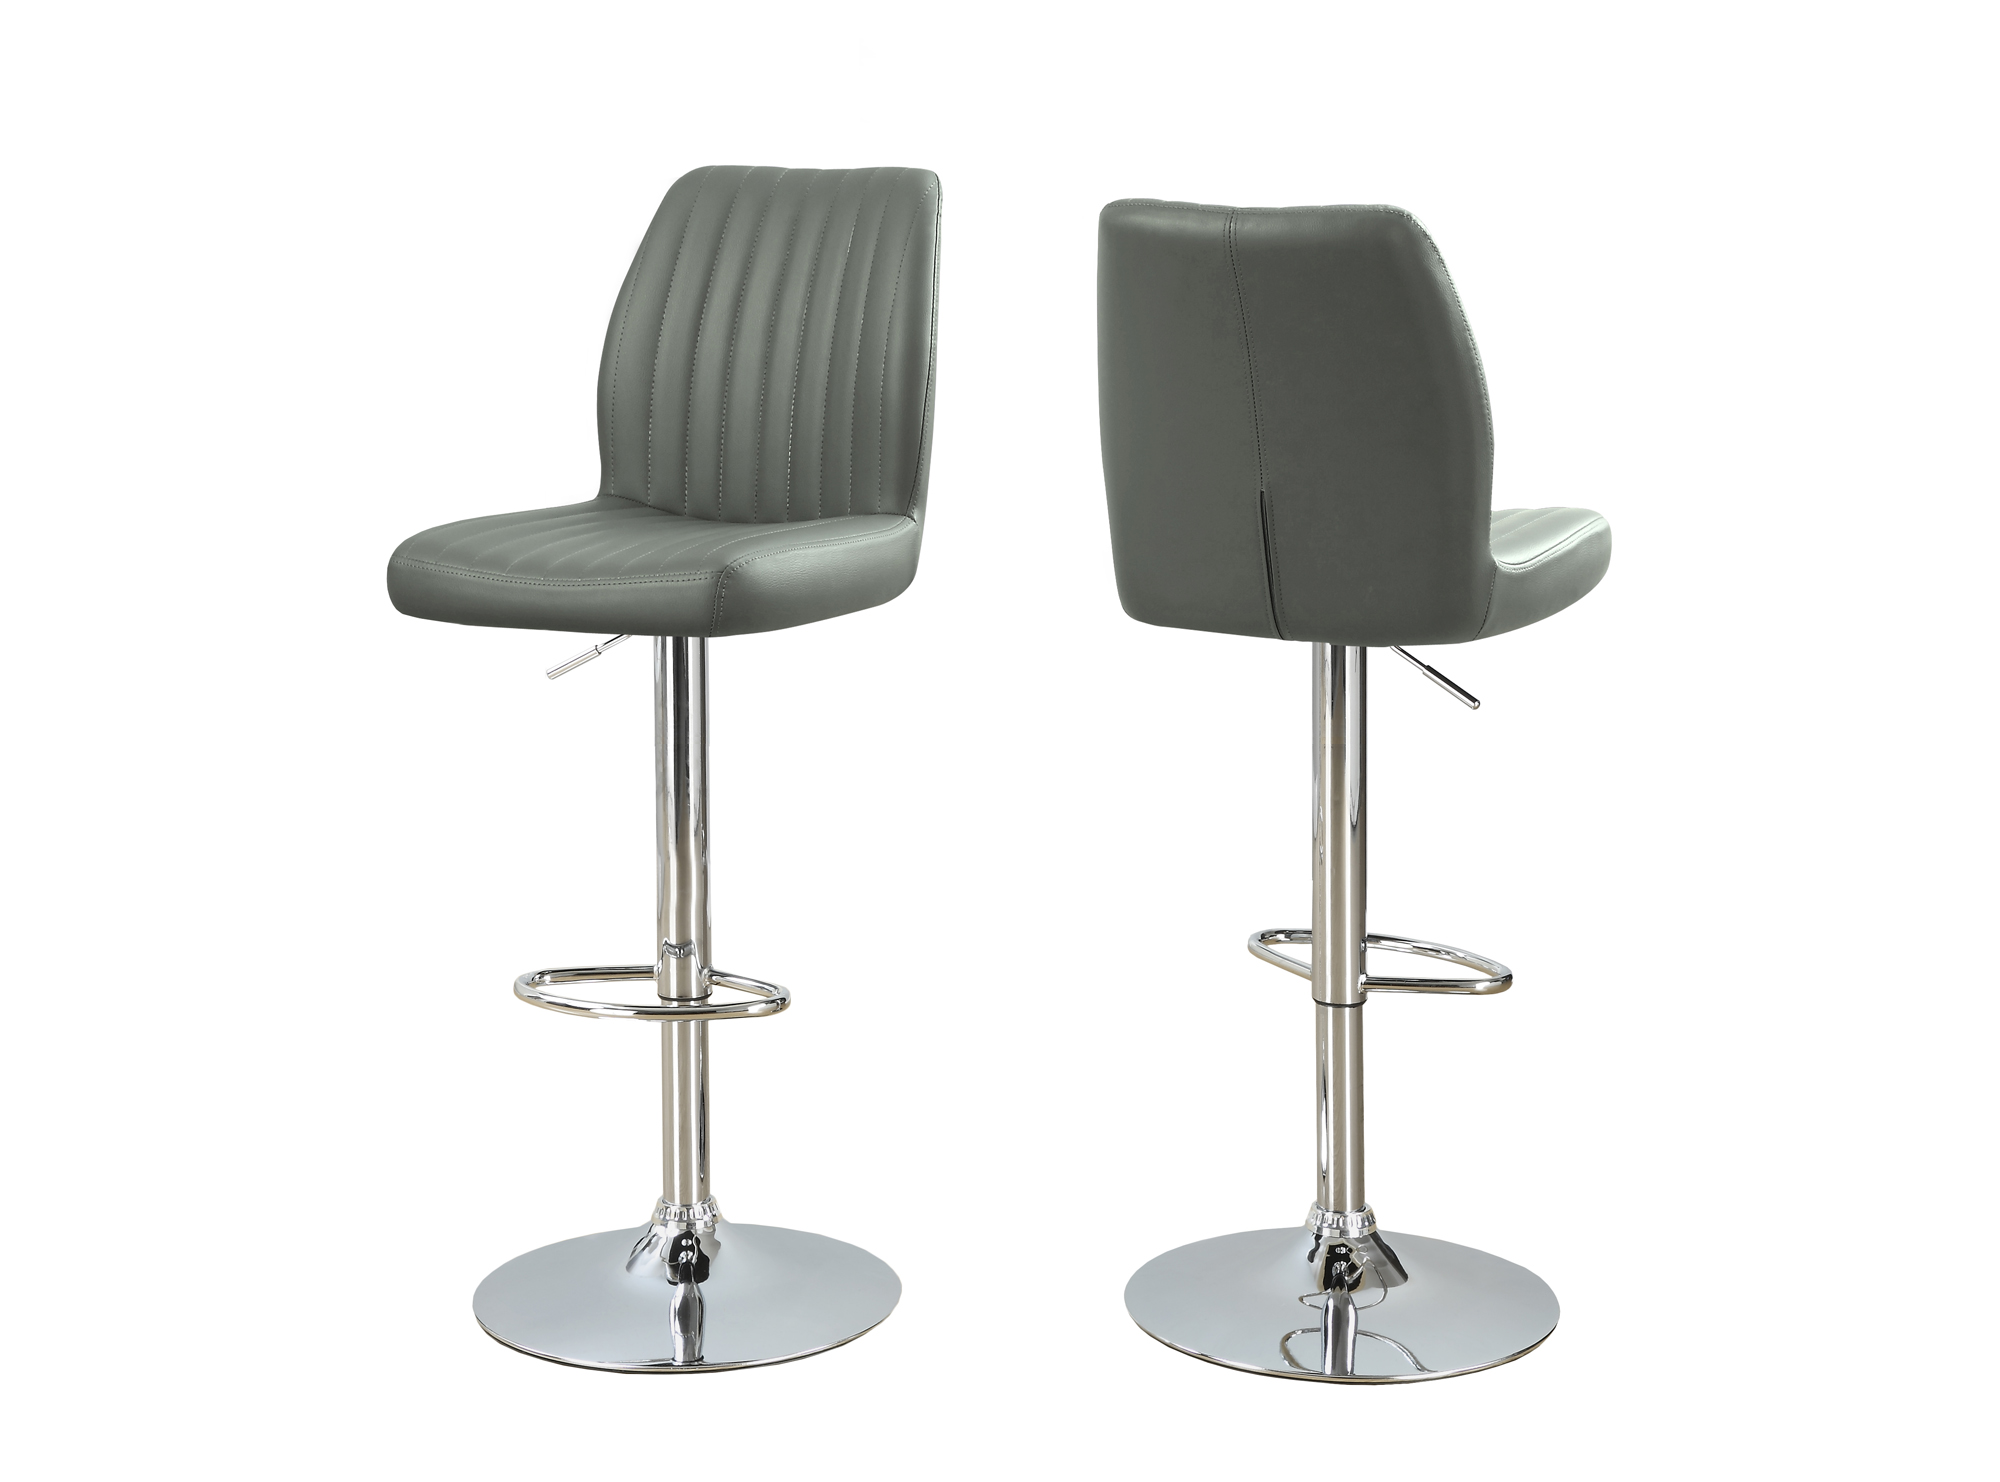 2-Pieces Hydraulic Lift Metal Barstool, Chrome Base and Grey Upholstery